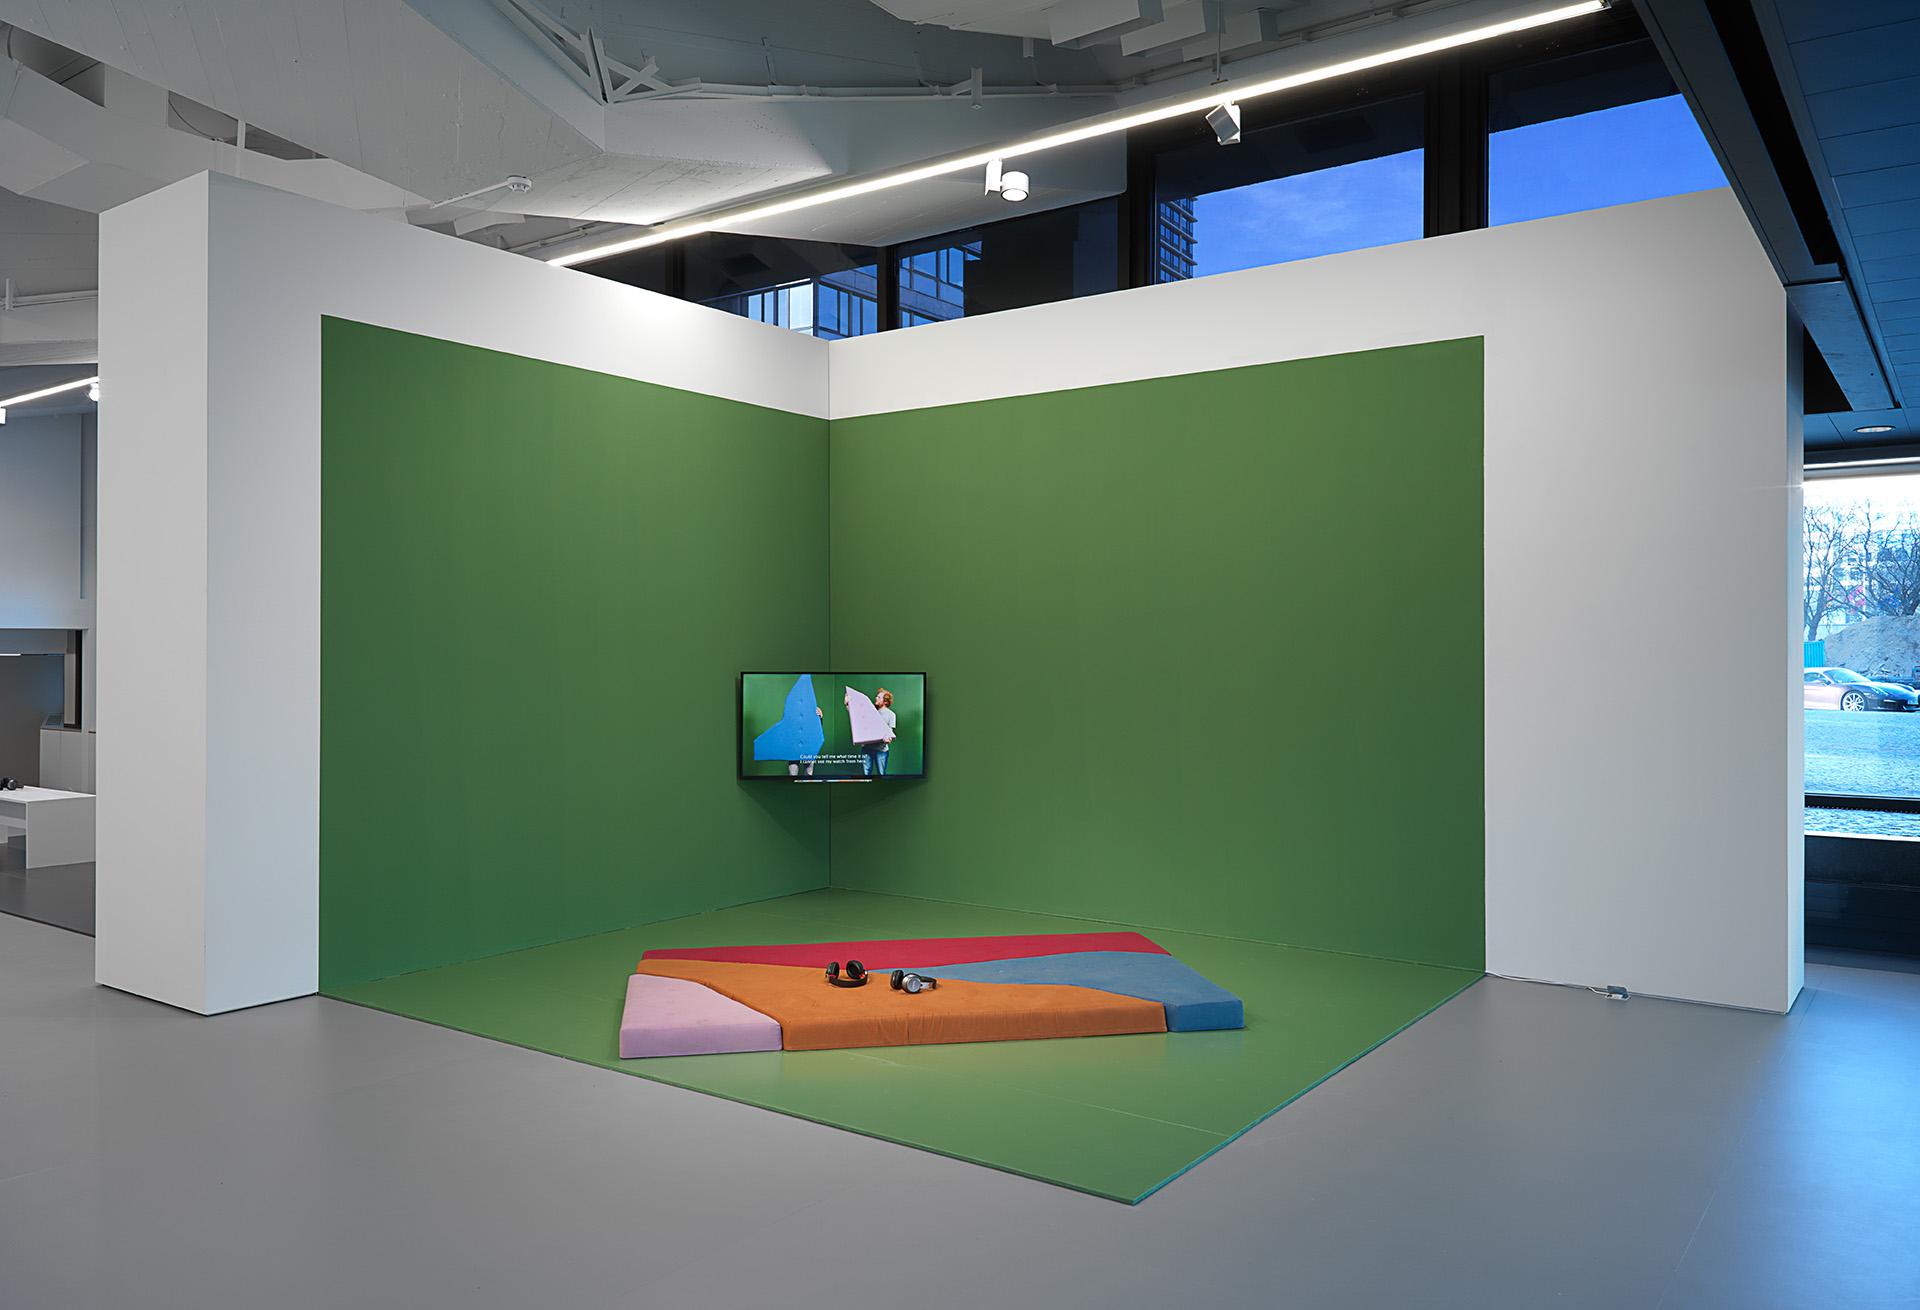 Installation view at Efremidis Gallery, Berlin